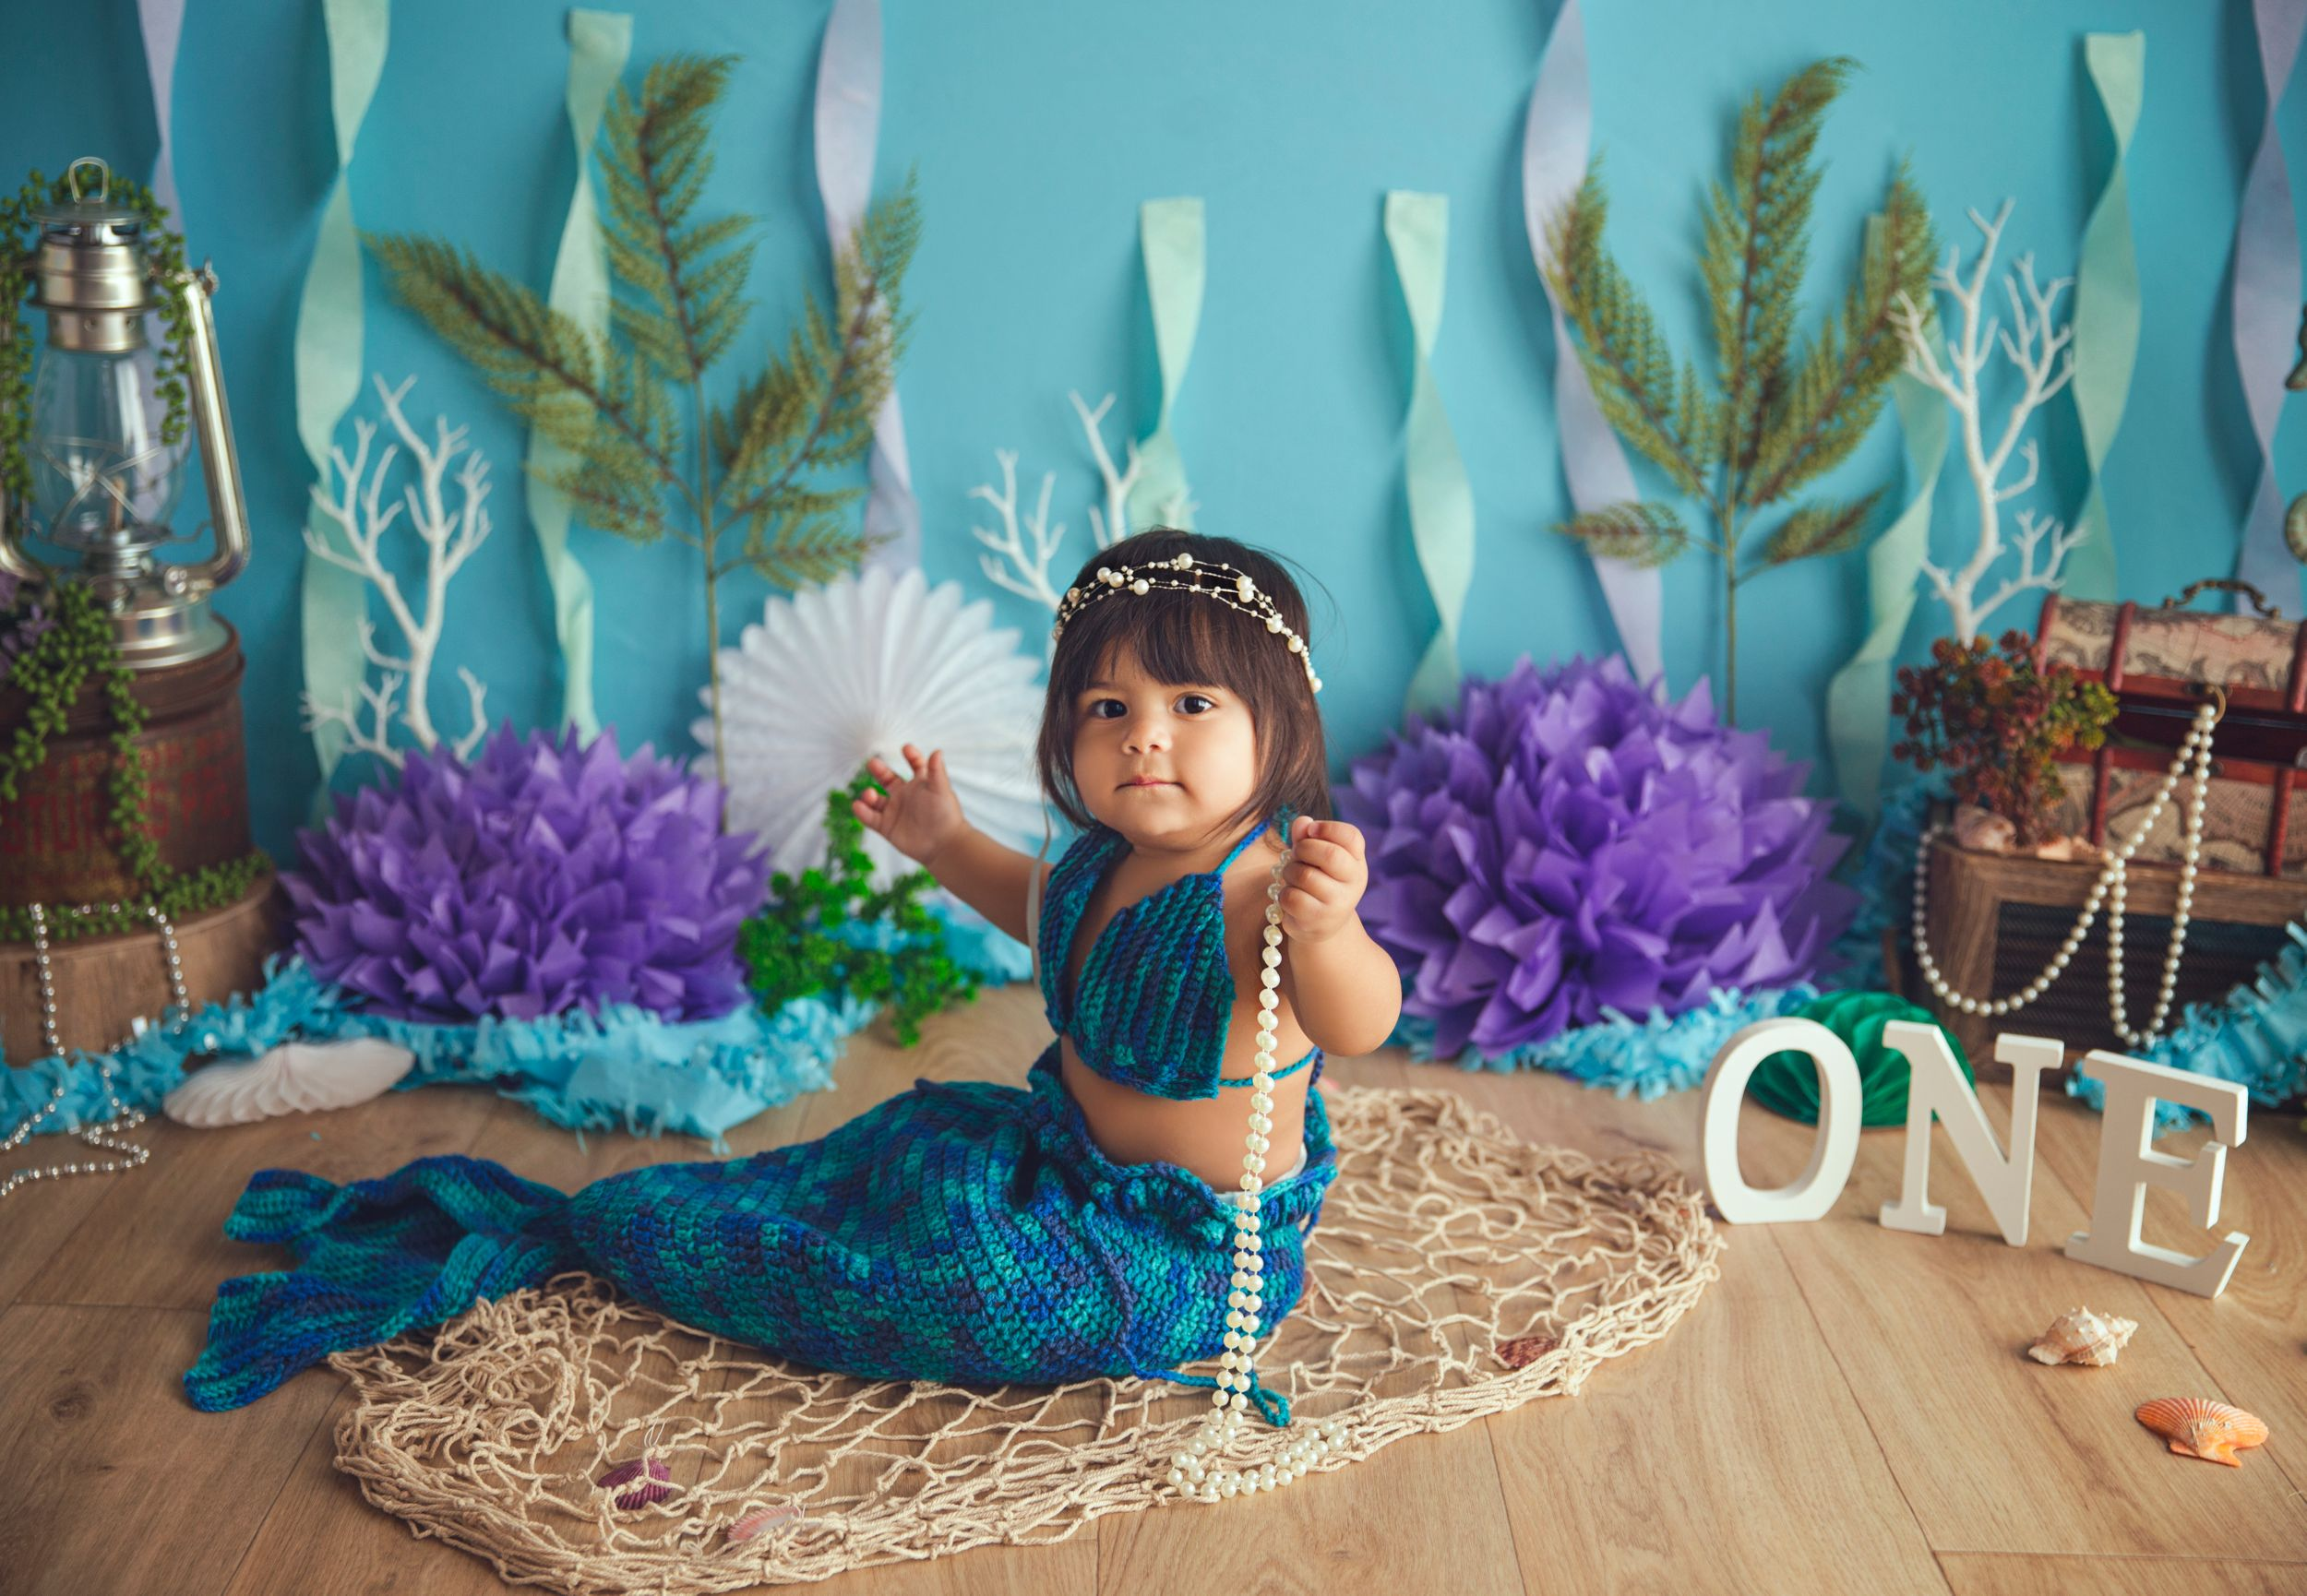 we found a mermaid in the studio baby girl one year old